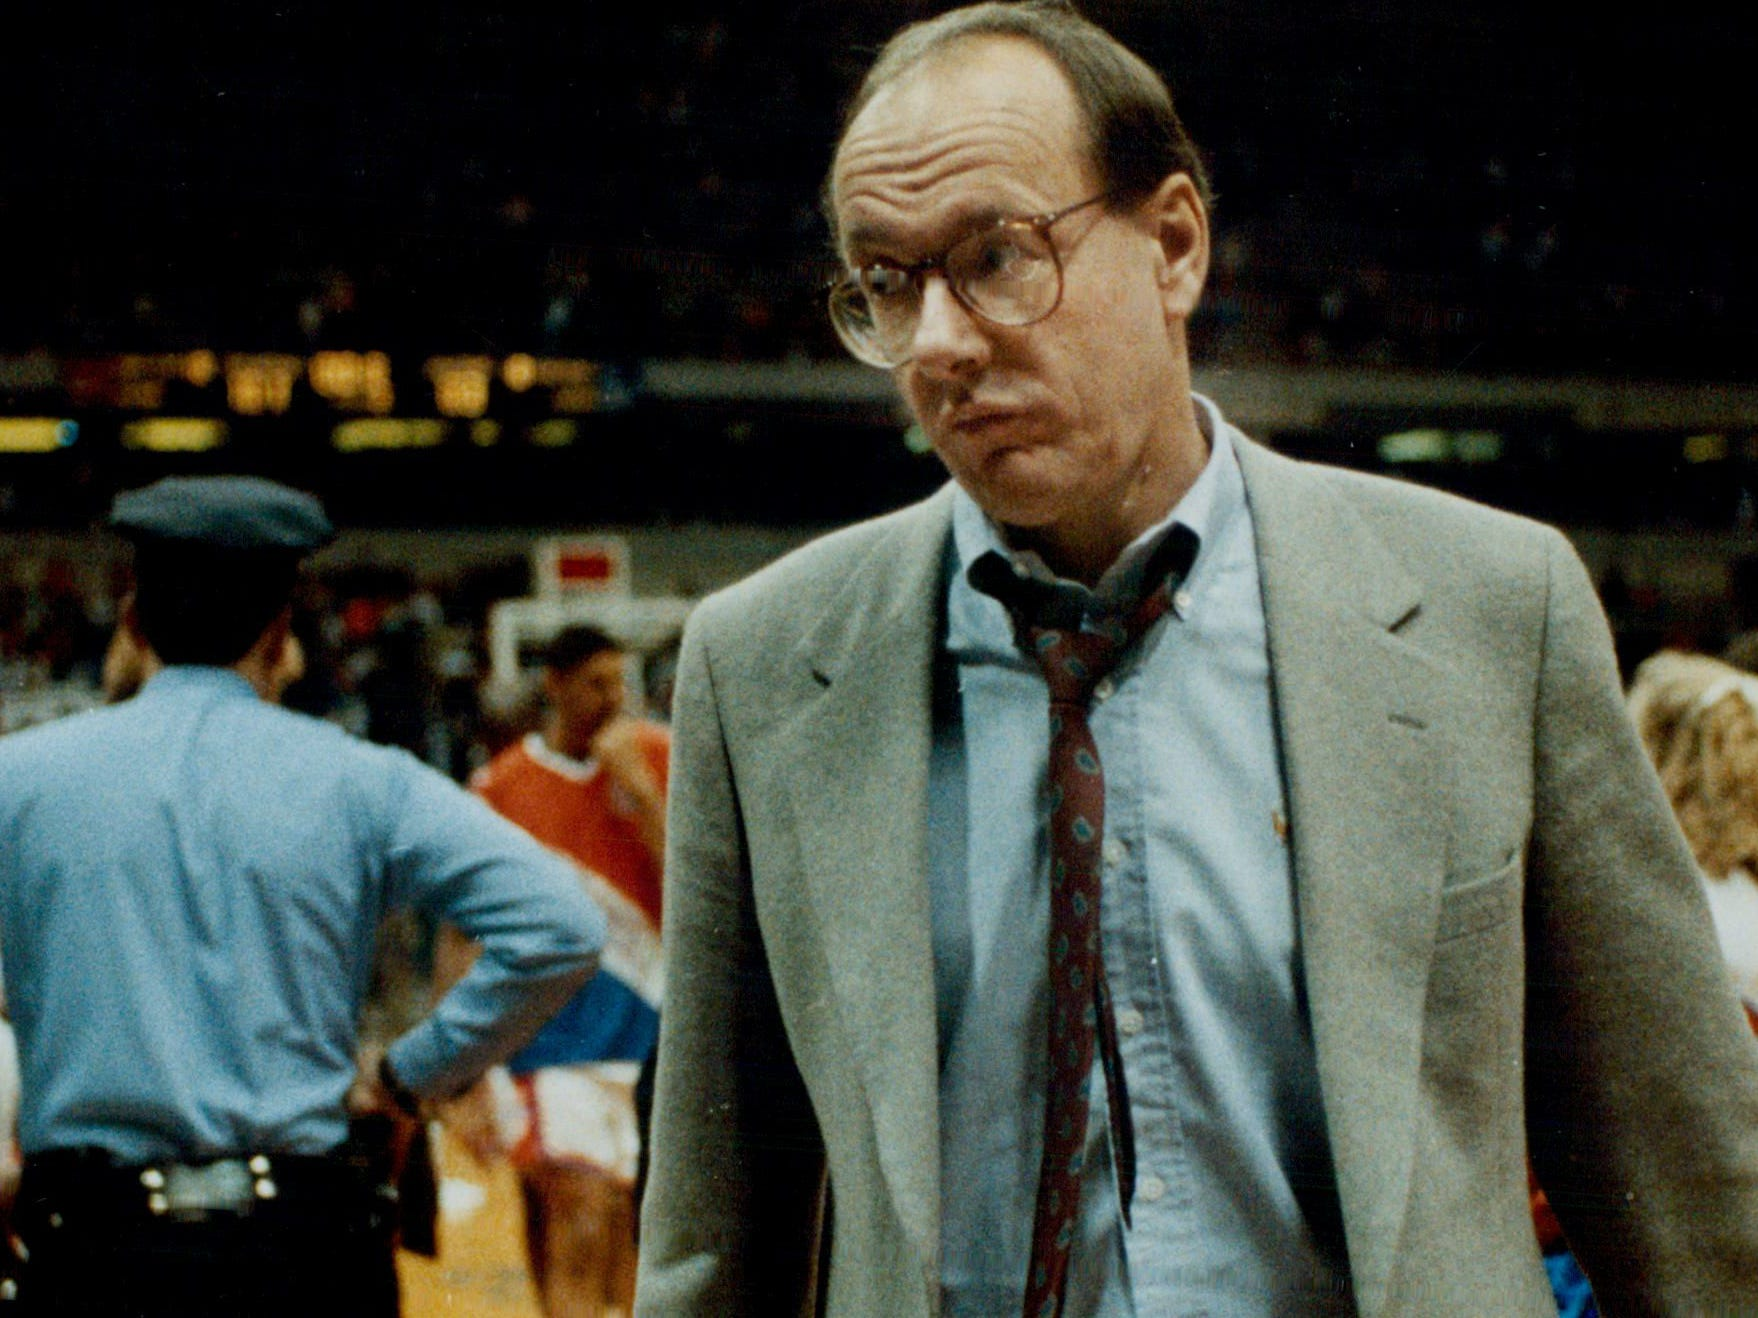 Jim Boeheim exits the Carrier Dome court after a 101-83 win over Providence on Feb. 12, 1991.